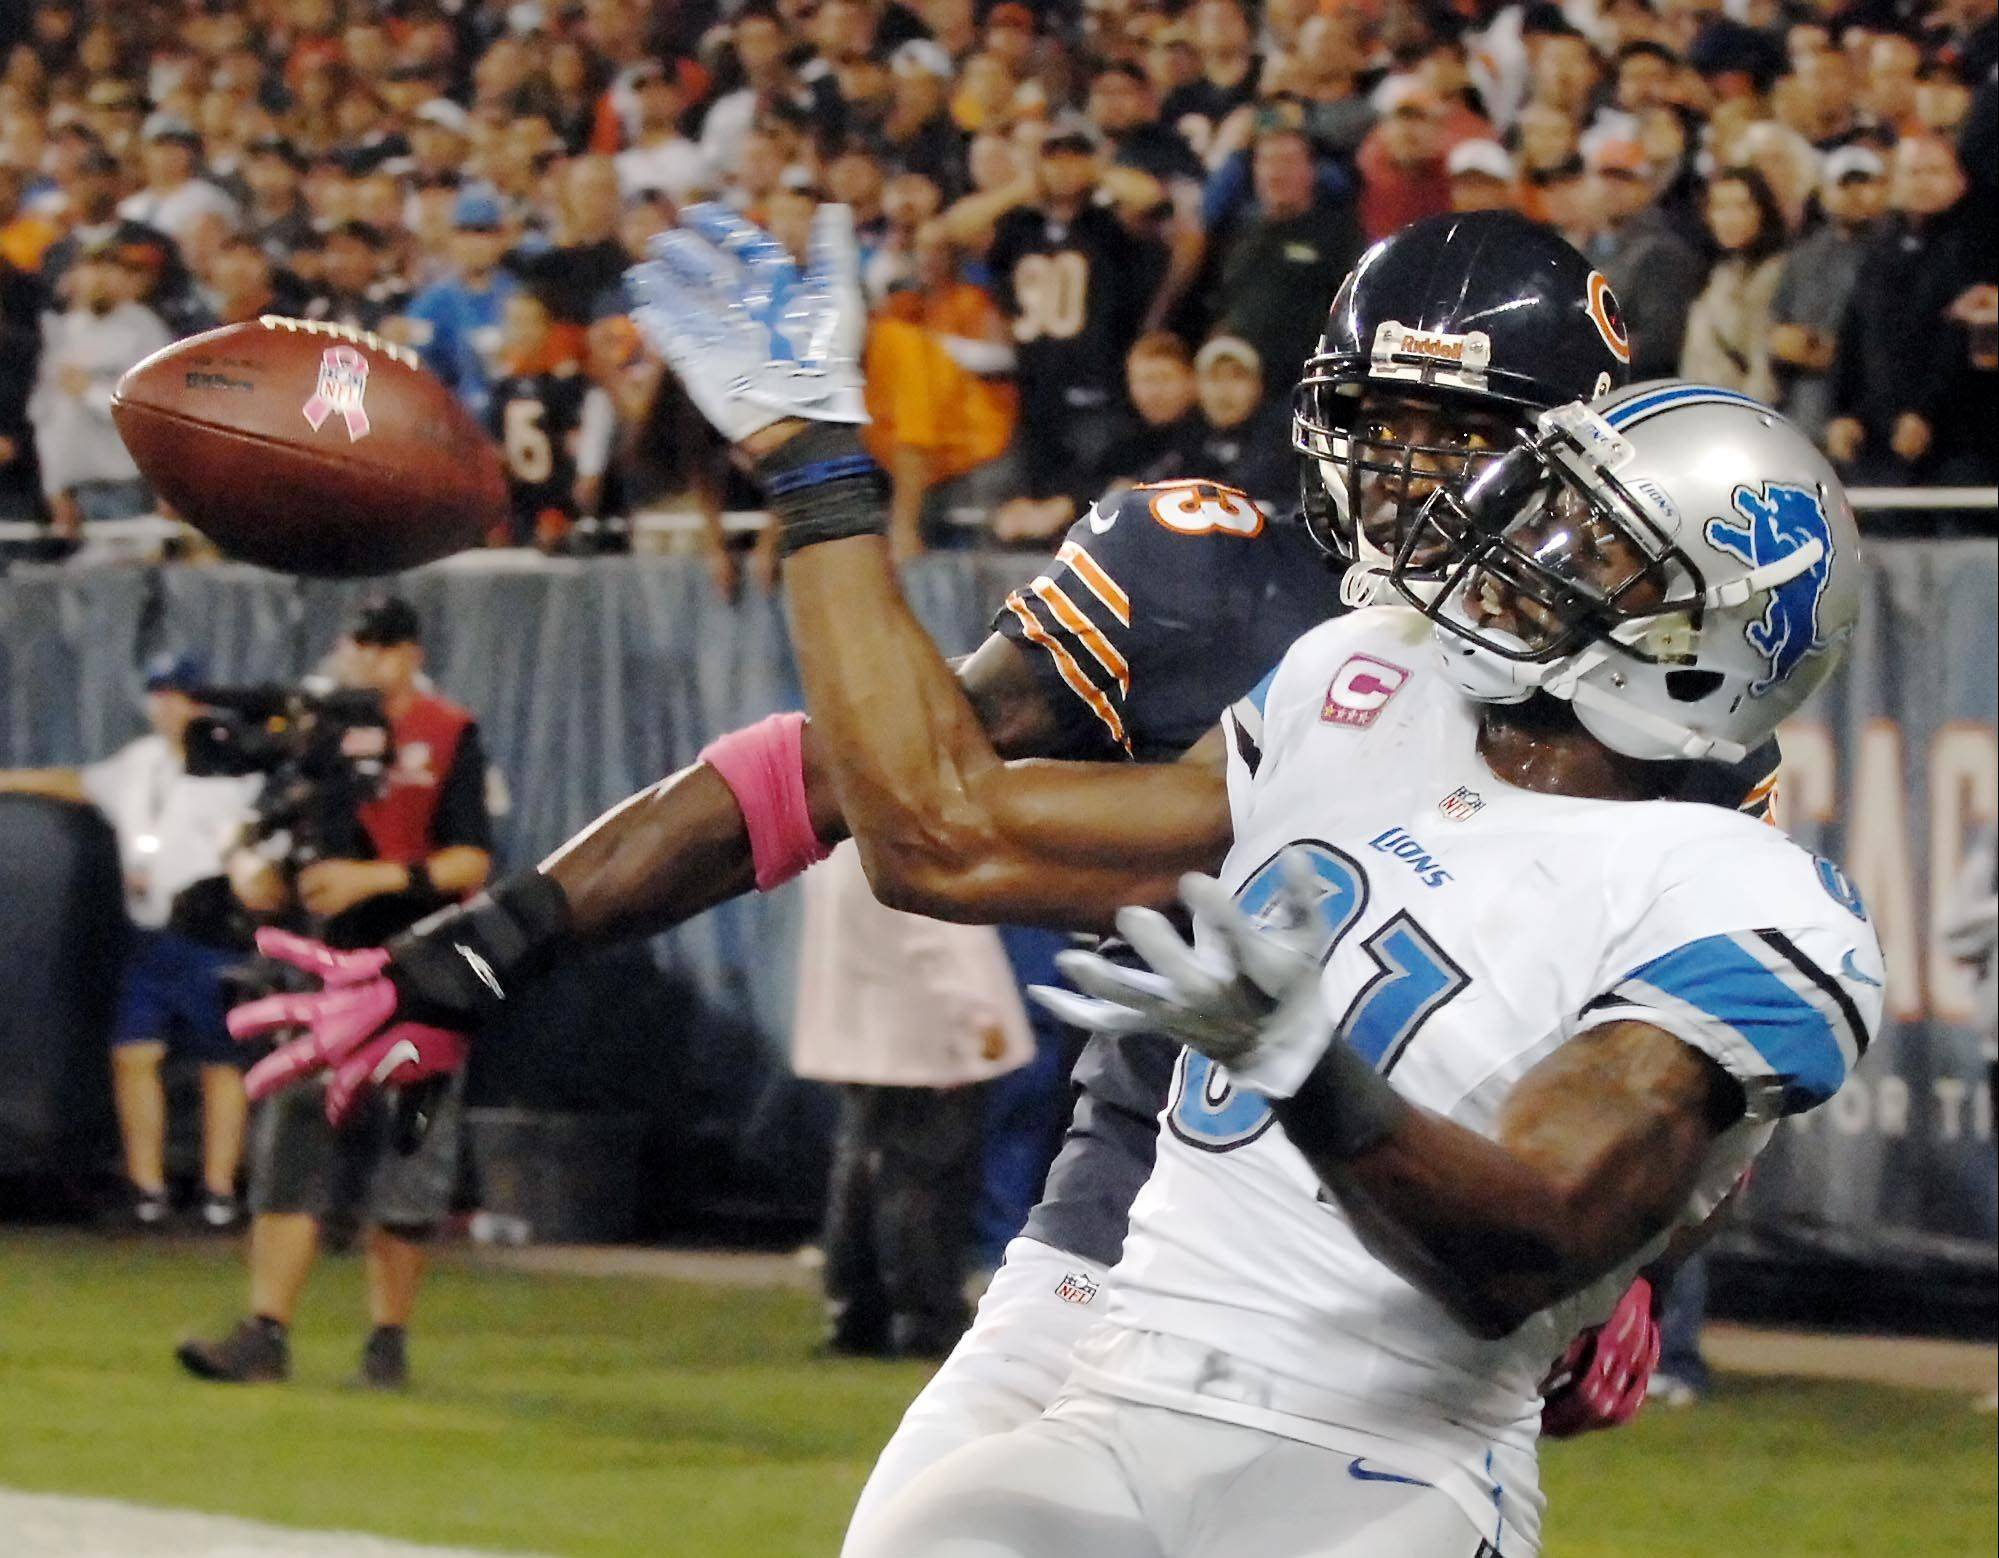 Cornerback Charles Tillman knocks the ball away from Lions wide receiver Calvin Johnson in the end zone late in the fourth quarter of the Bears' 13-7 win at Soldier Field on Monday night.